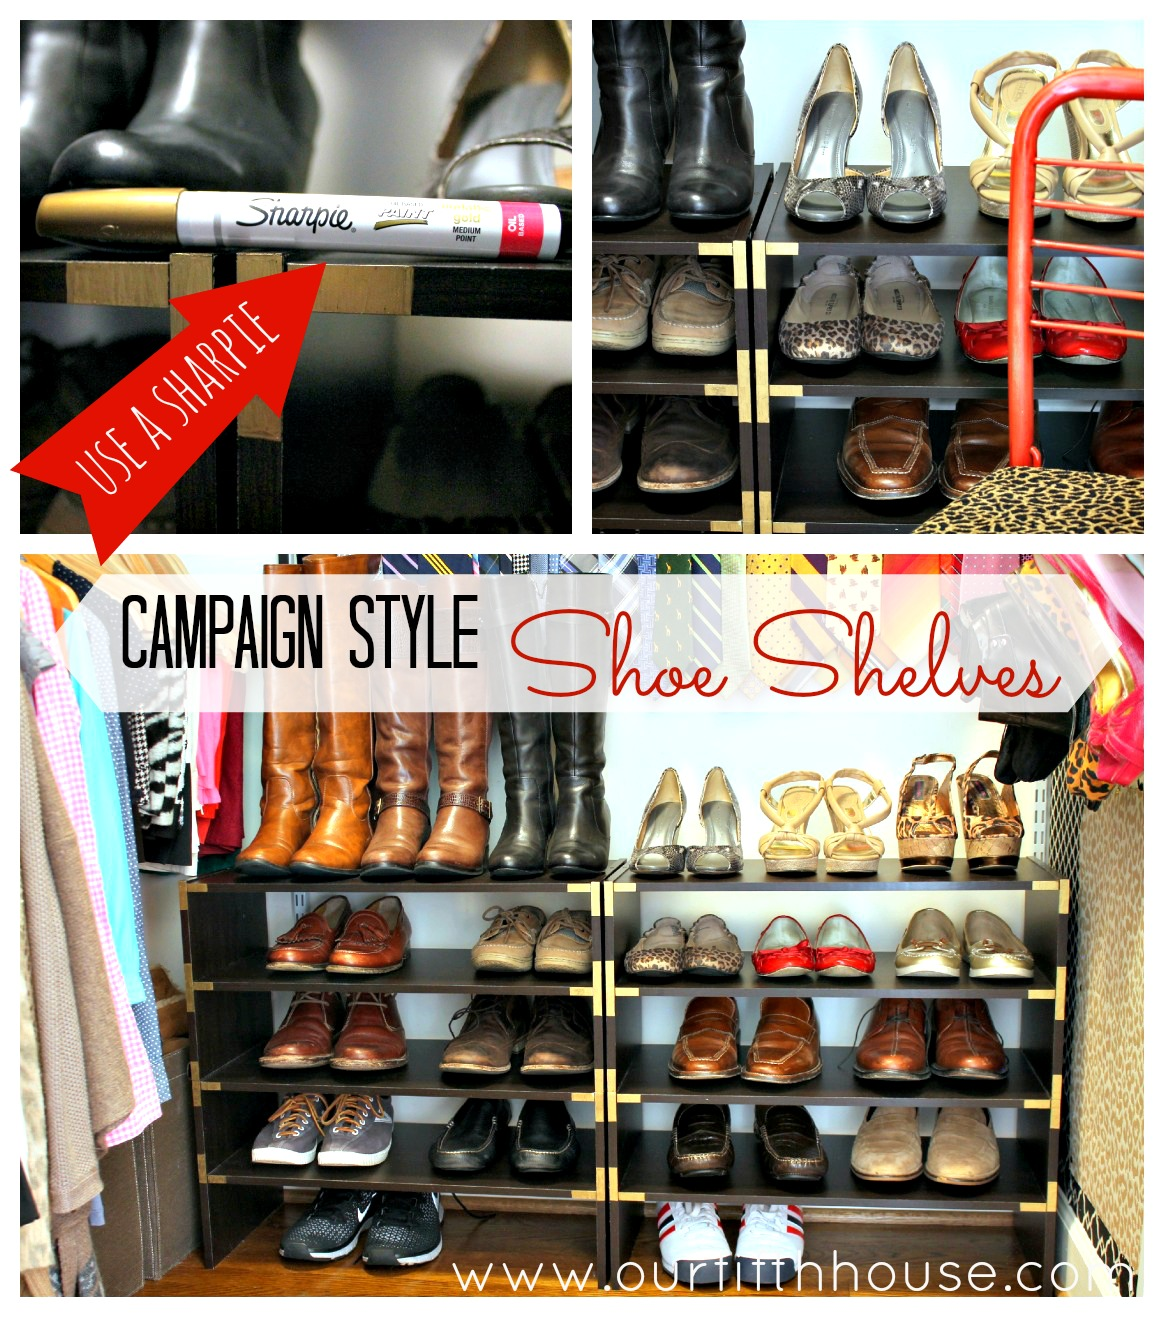 Our Fifth House: DIY Shoe Rack & Campaign Style Shoe Shelves